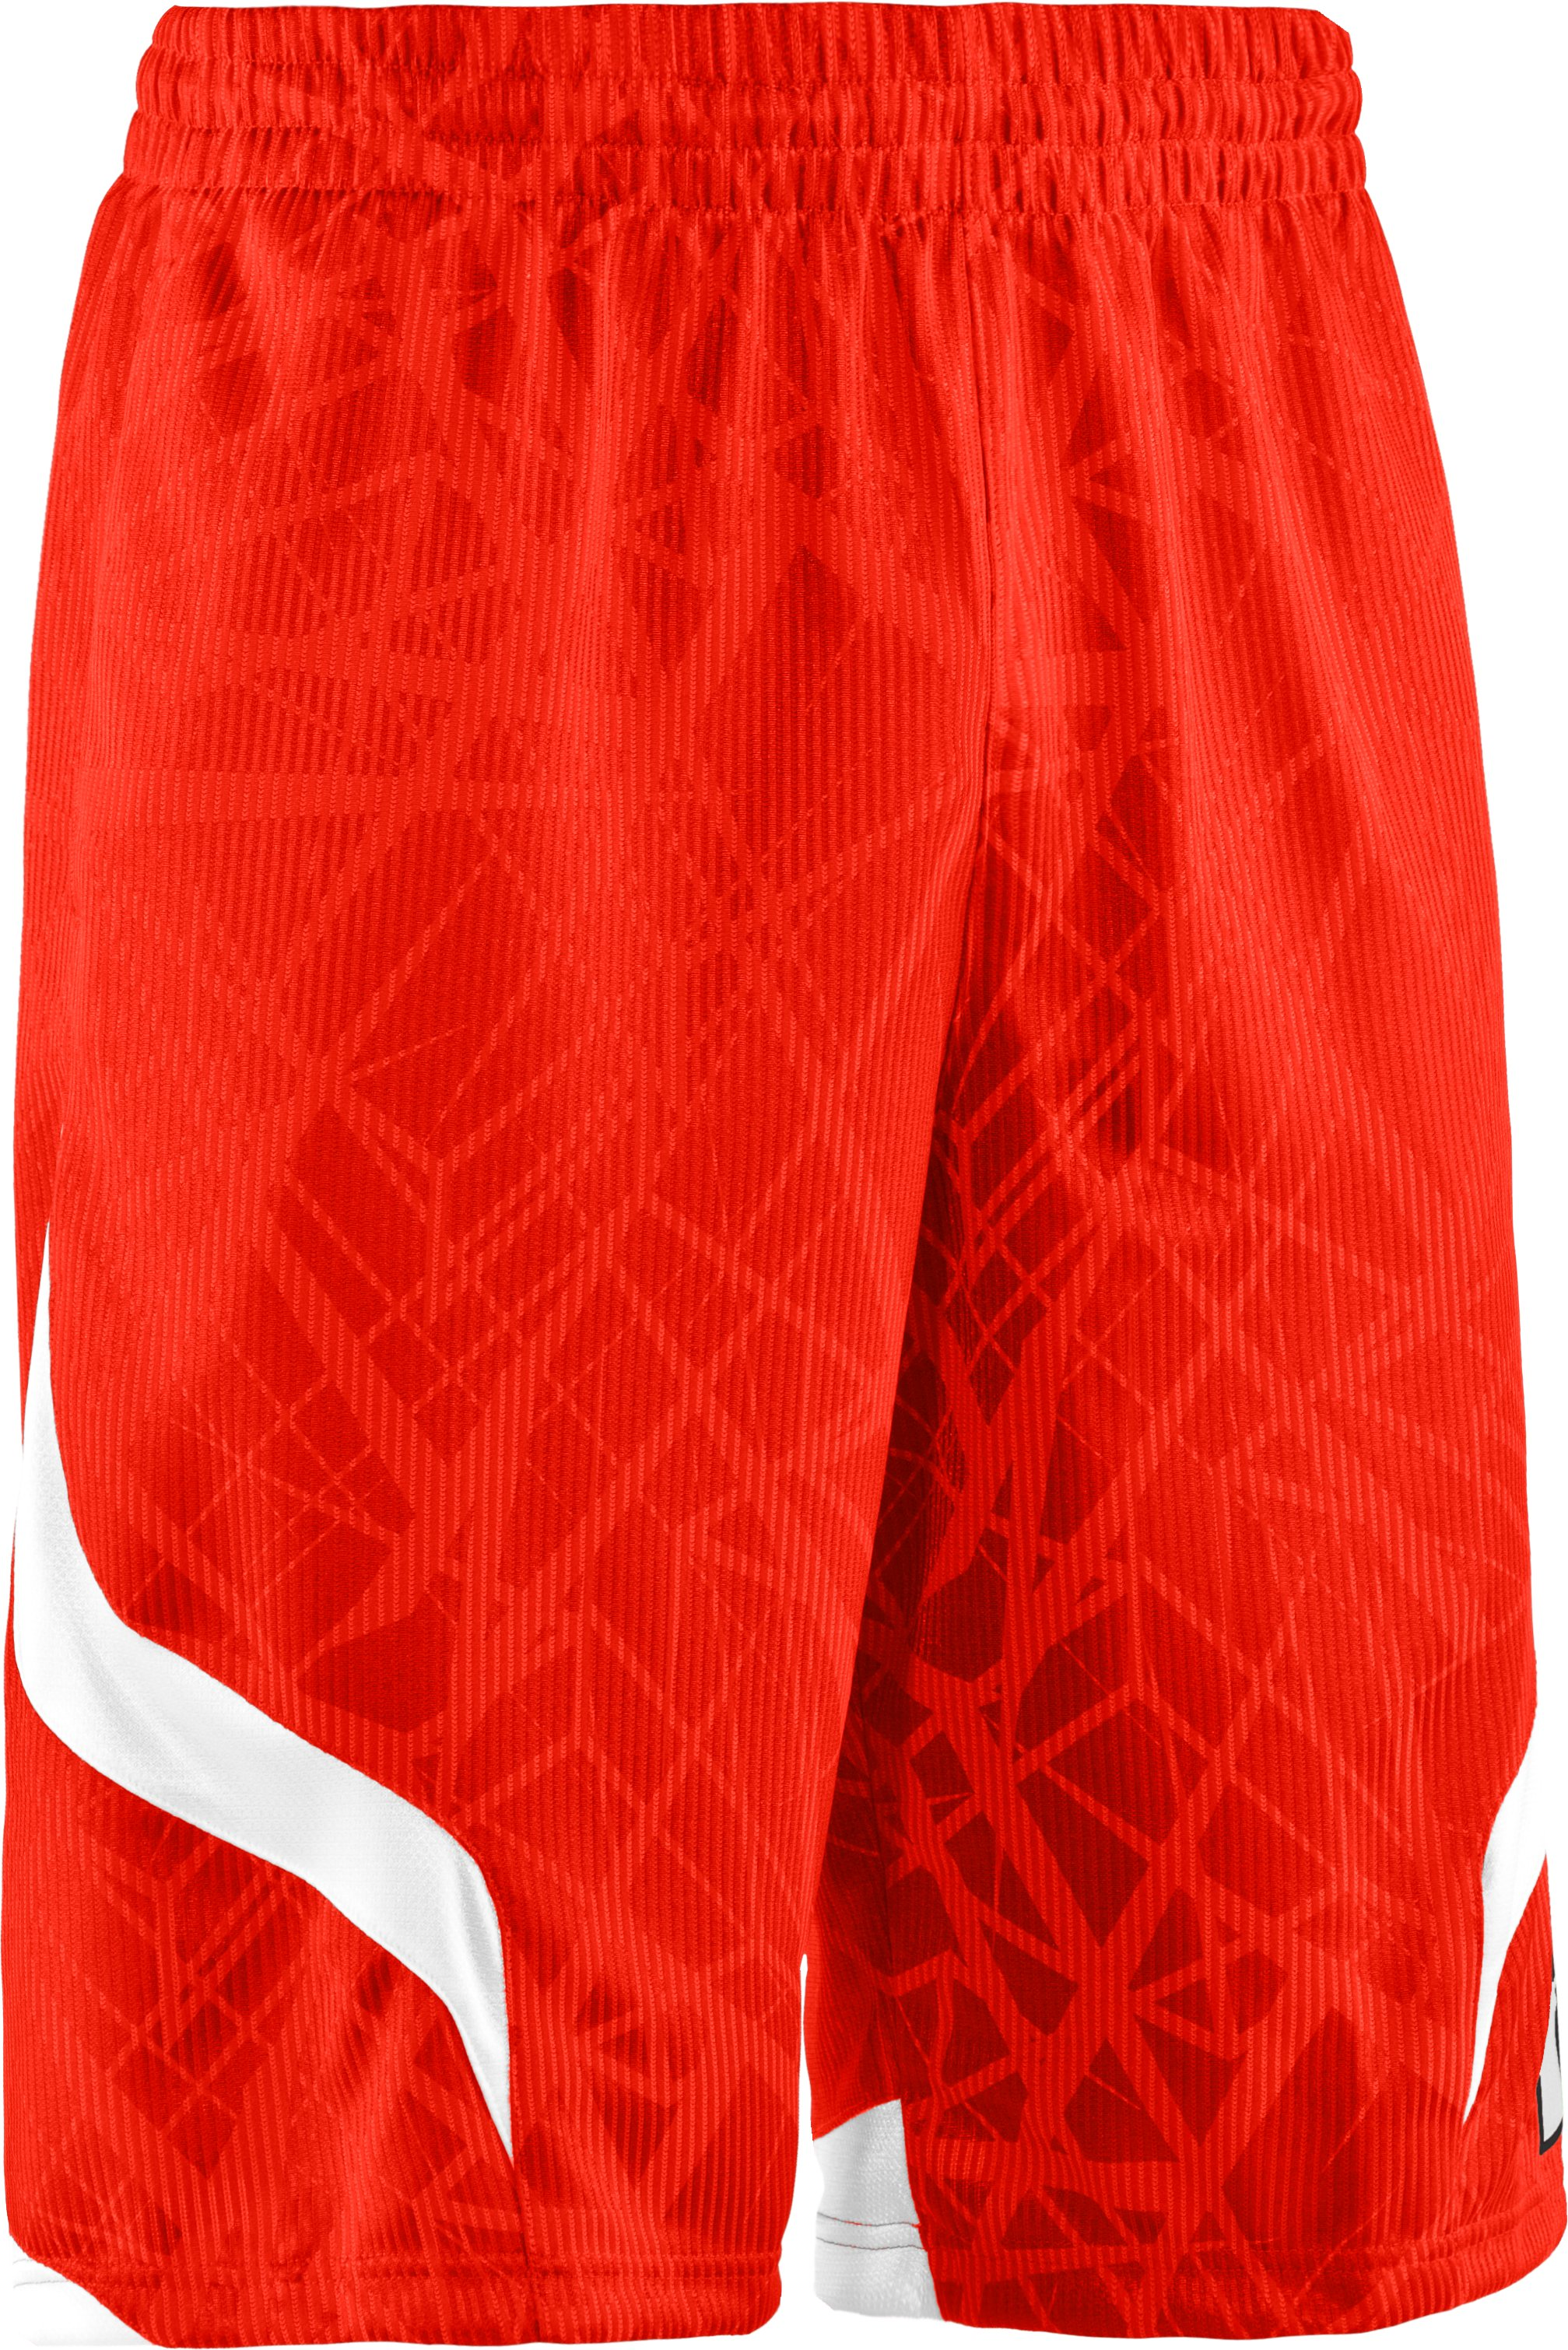 "Men's Printed UA Valkyrie 12"" Basketball Shorts, Fuego,"